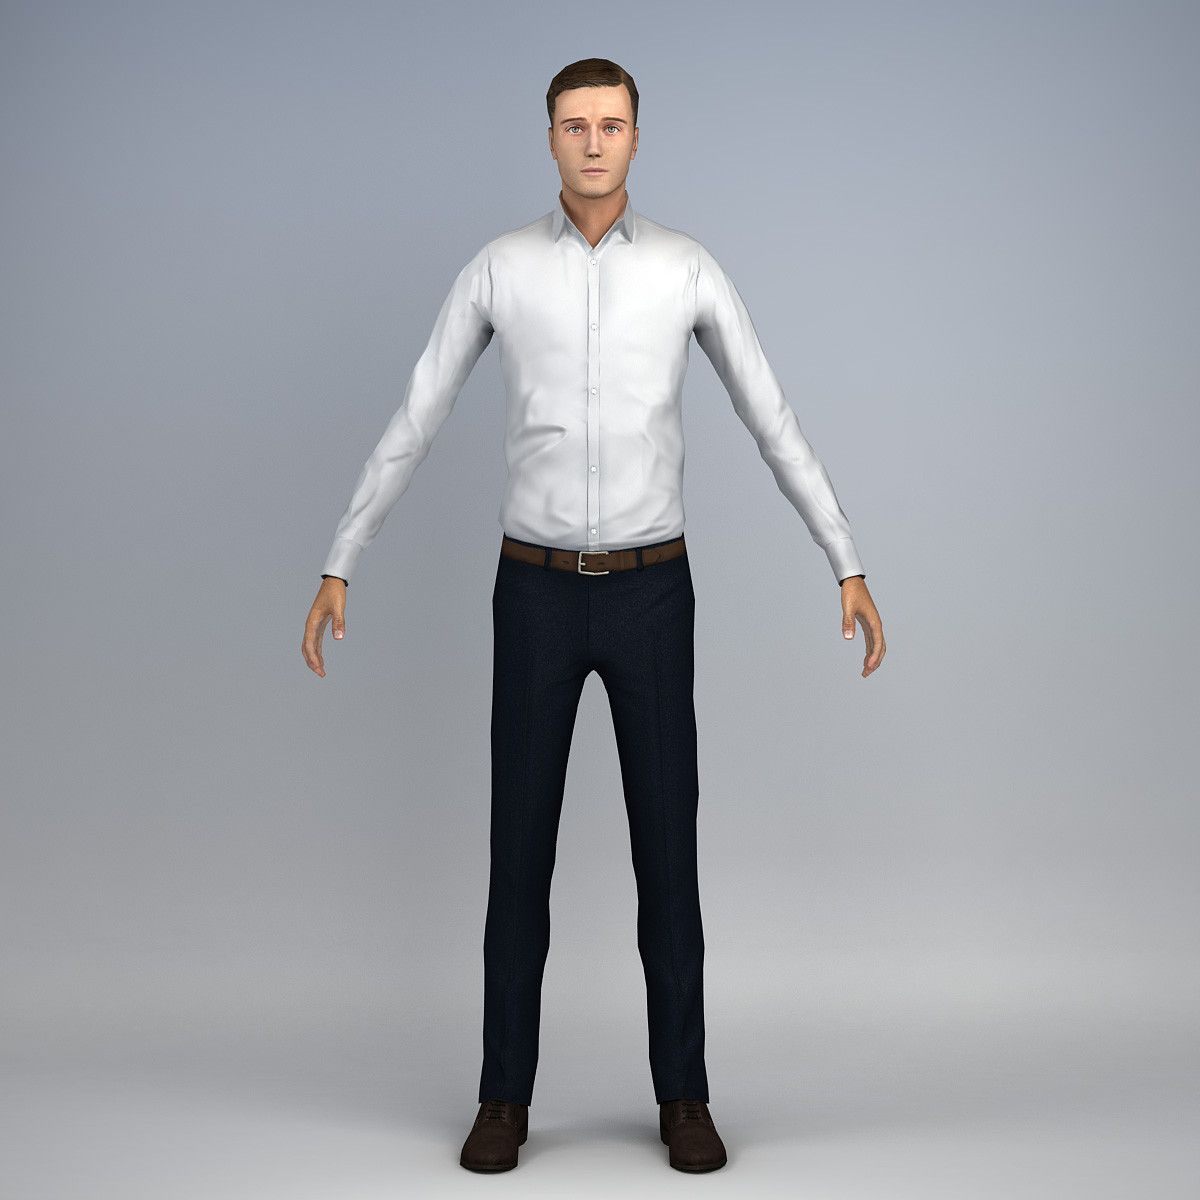 3ds max man character people | Идеи для дома | Man character, People